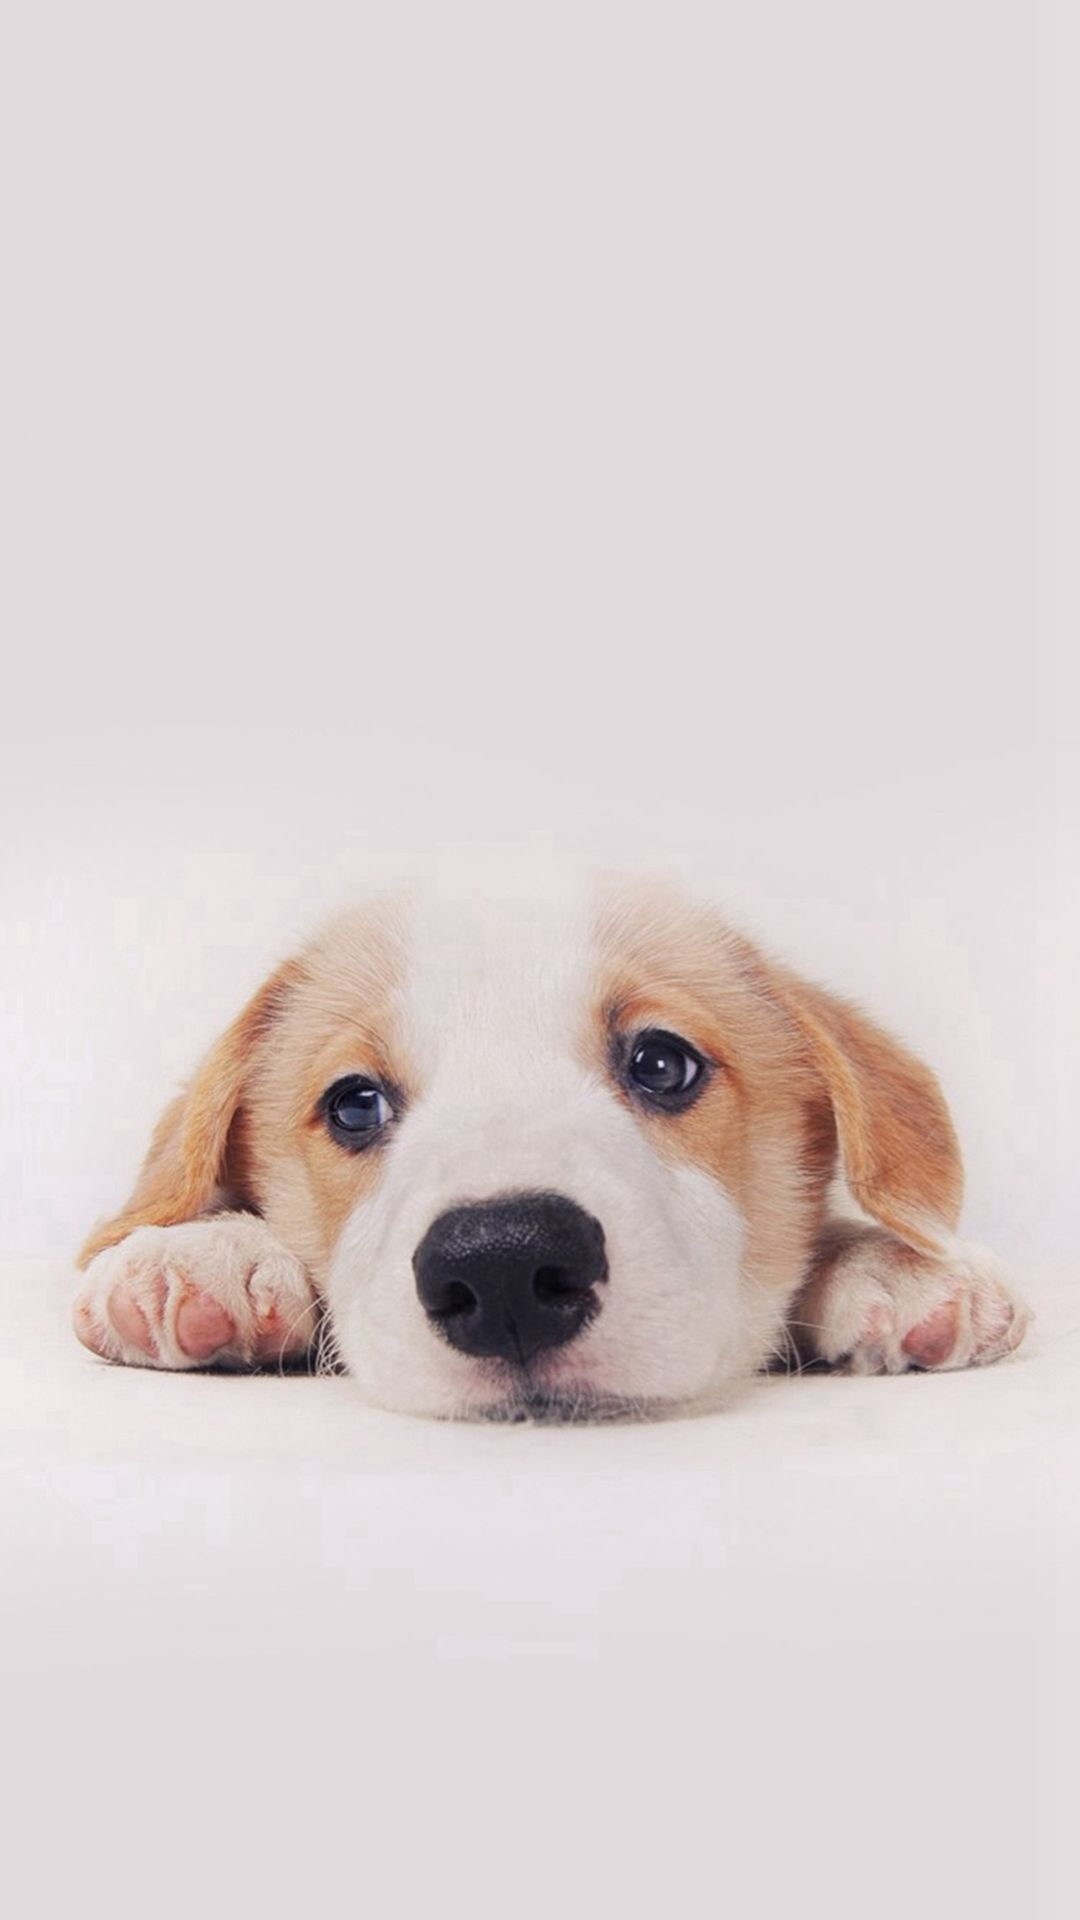 Cute Puppy Dog Pet Iphone 6 Wallpaper Download Iphone Wallpapers Ipad Wallpapers One Stop Download Cute Dog Wallpaper Dog Background Dog Wallpaper